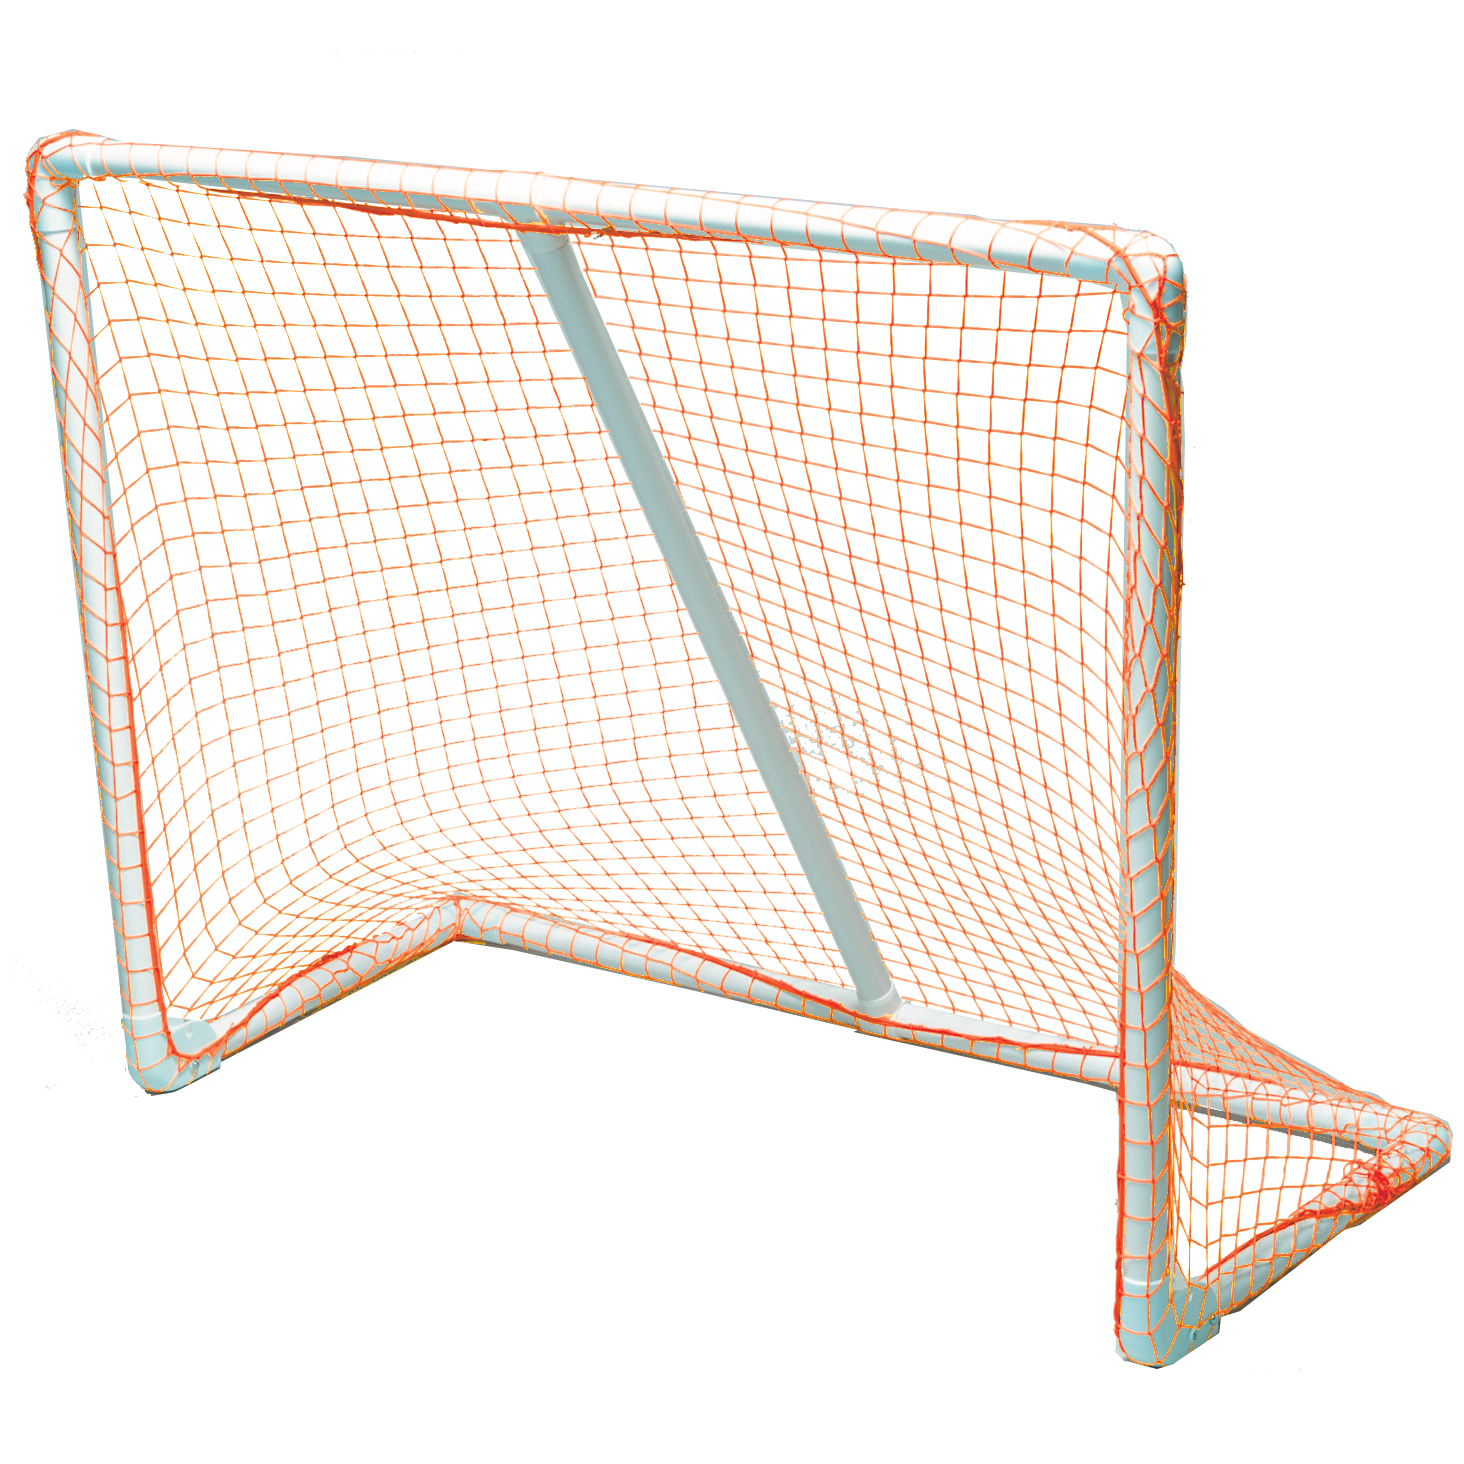 Park and Sports PVC Sports Goal